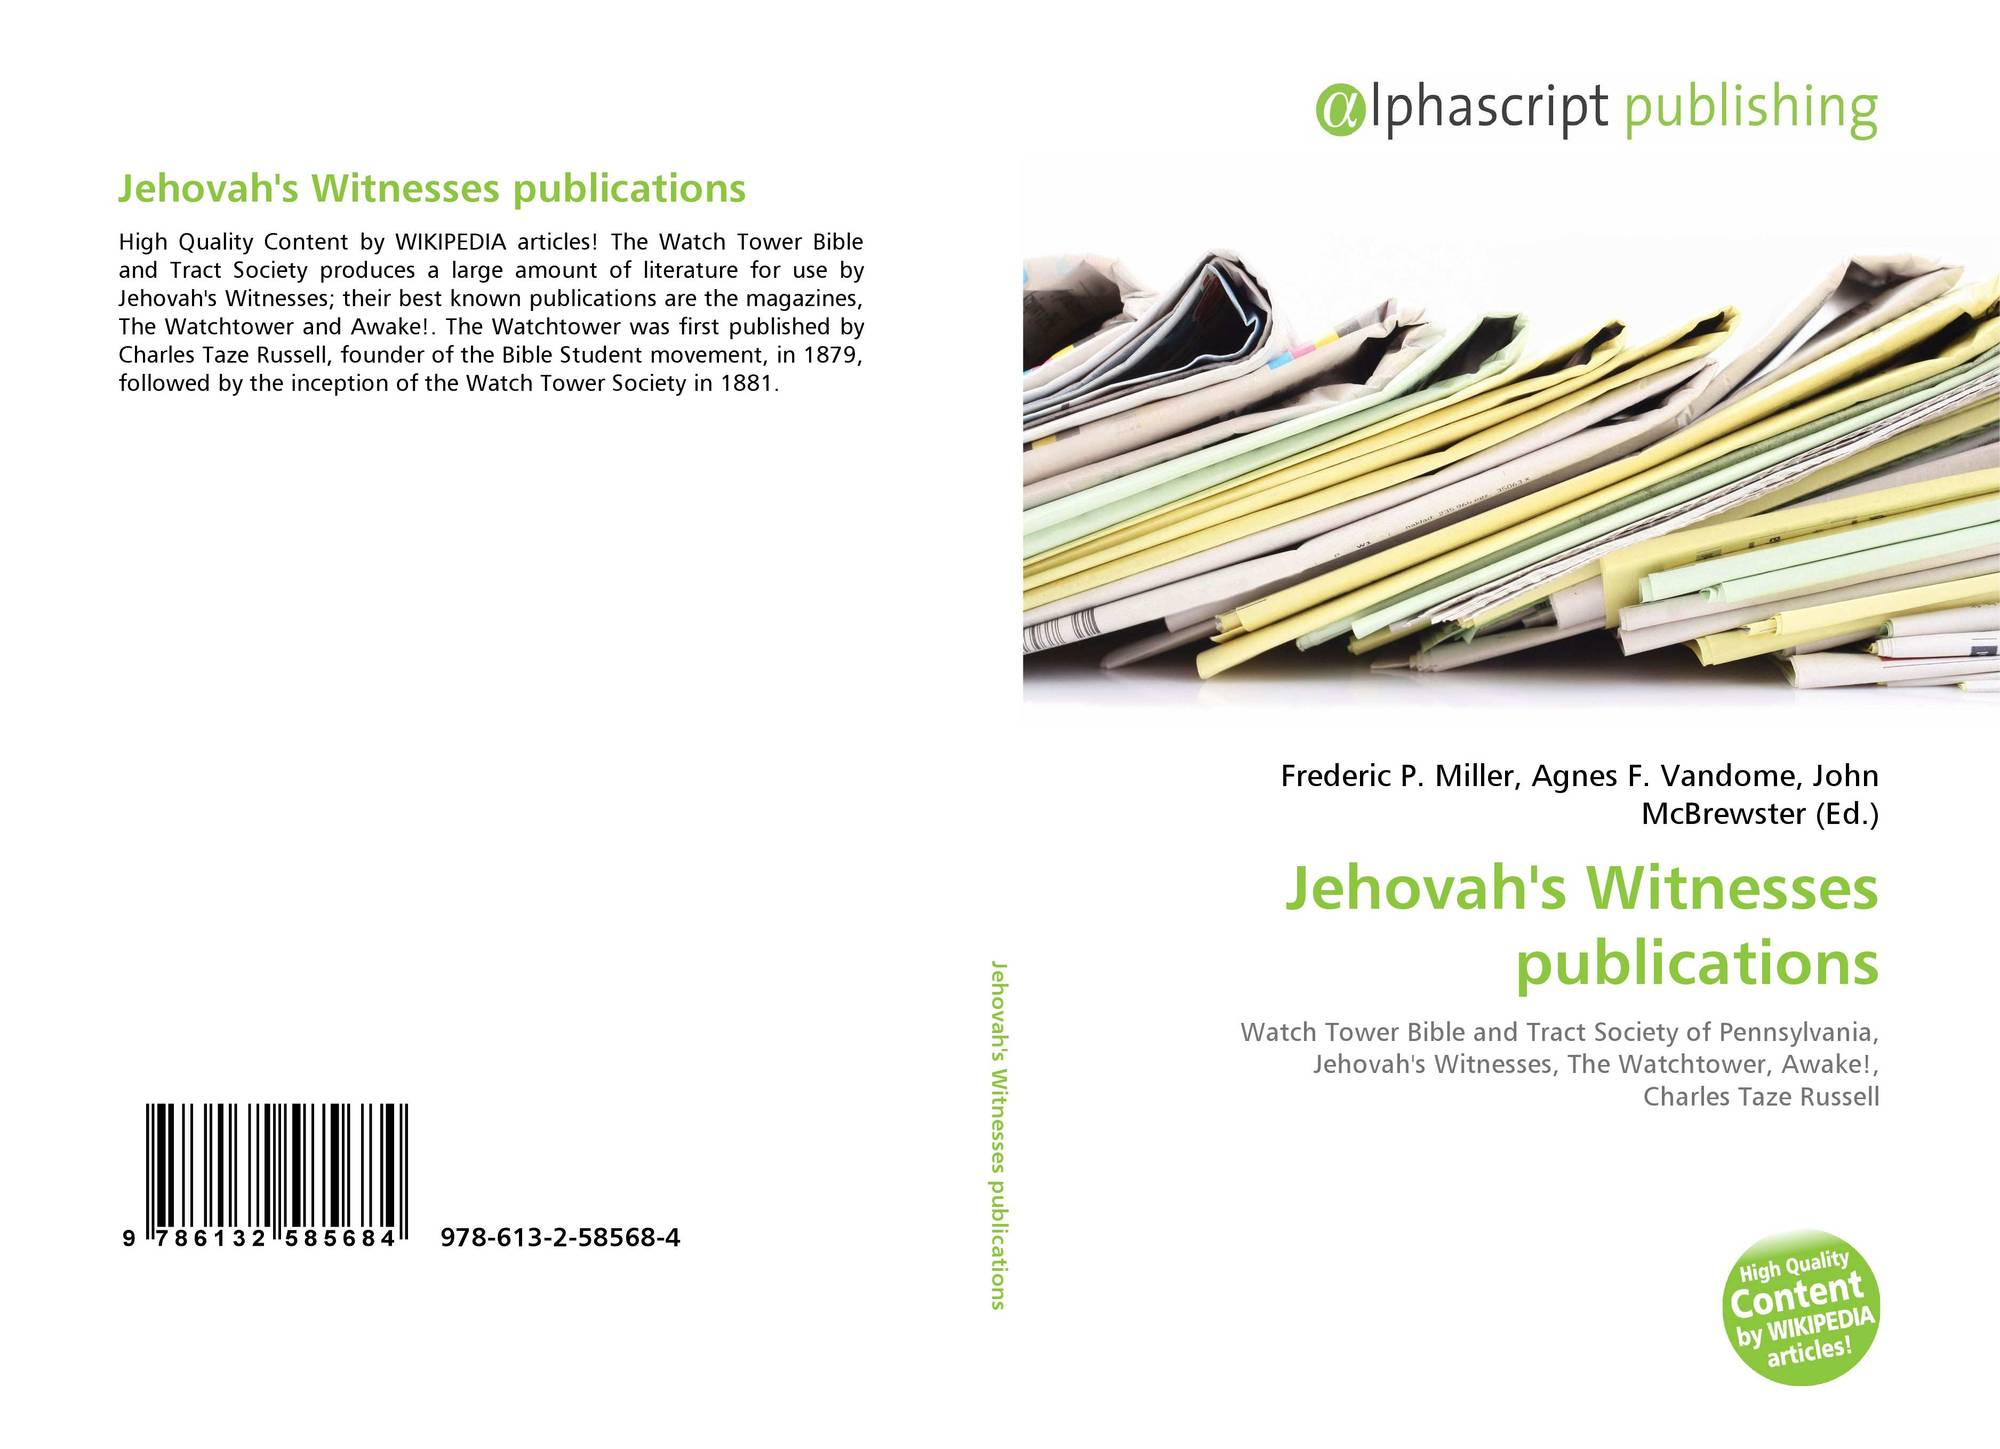 Jehovah's Witnesses publications, 978-613-2-58568-4, 6132585680